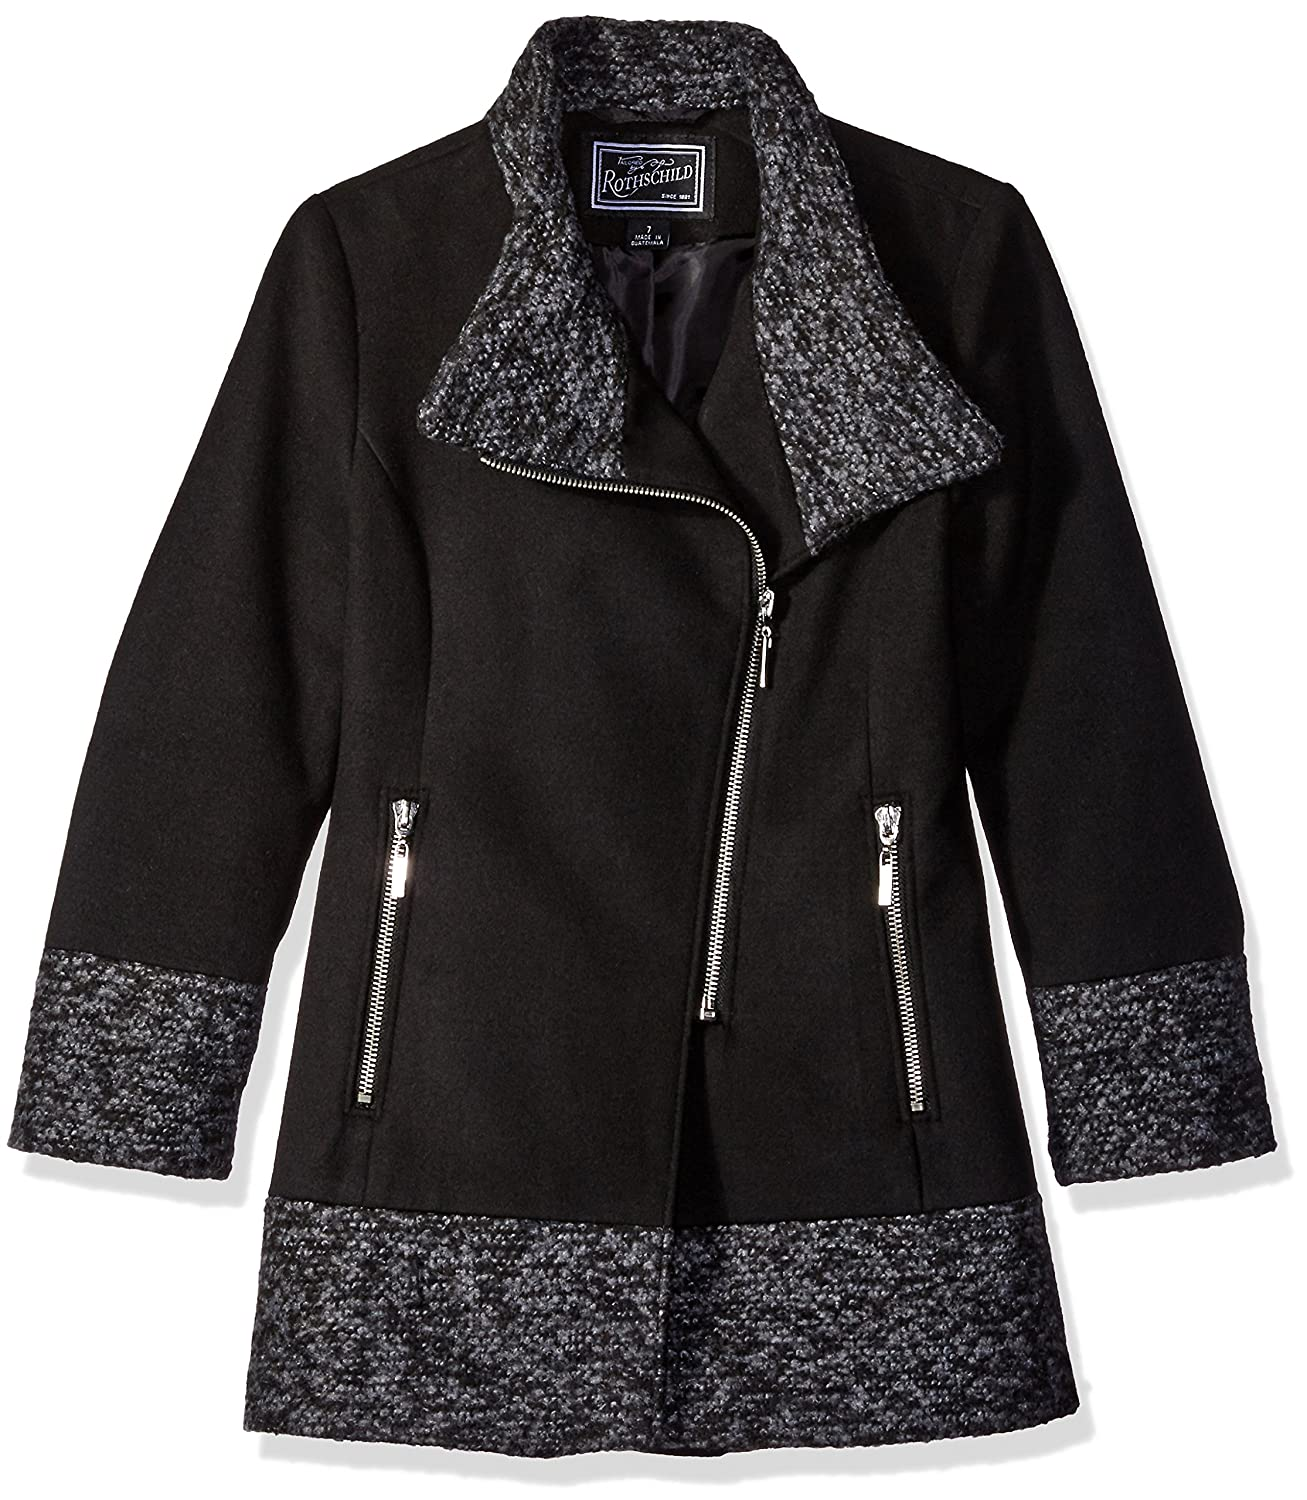 Rothschild Girls' Big Faux Wool Coat with Boucle Trim 6328